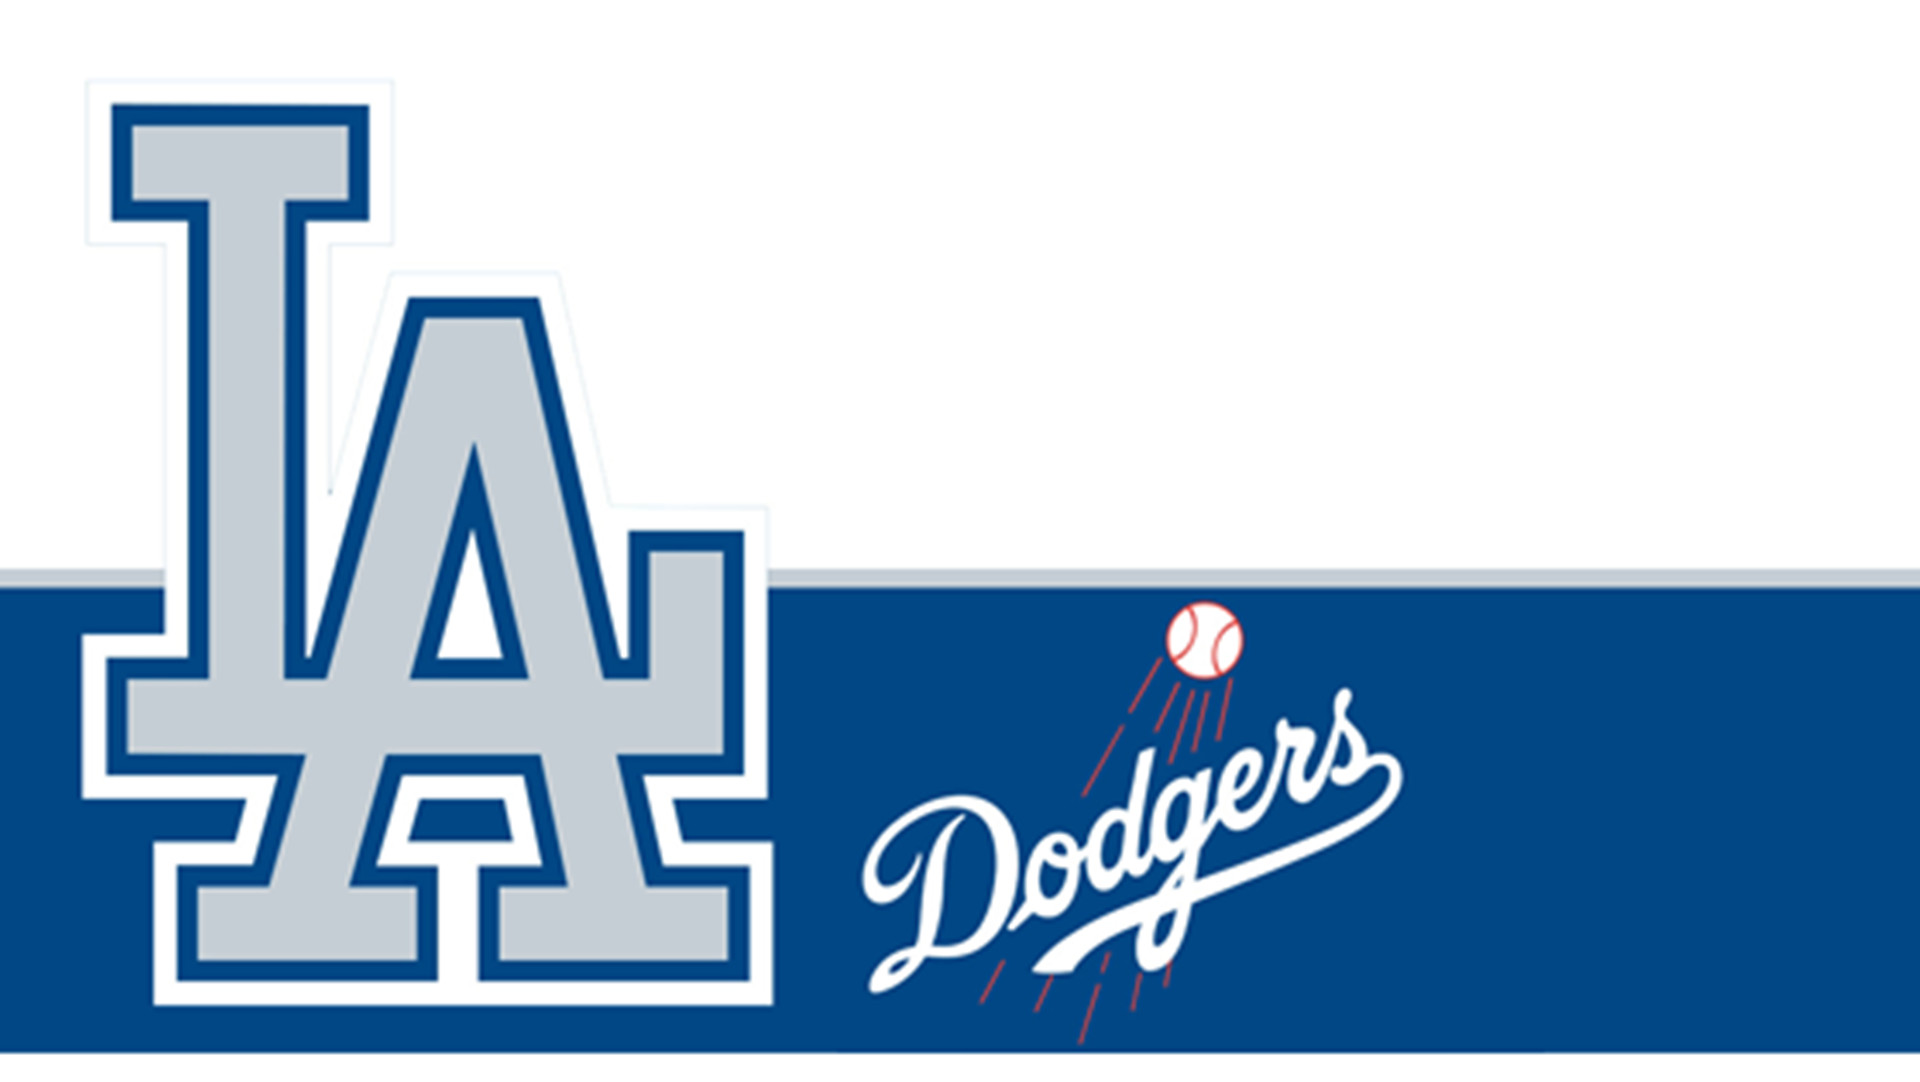 Dodgers Backgrounds Free Download HD.